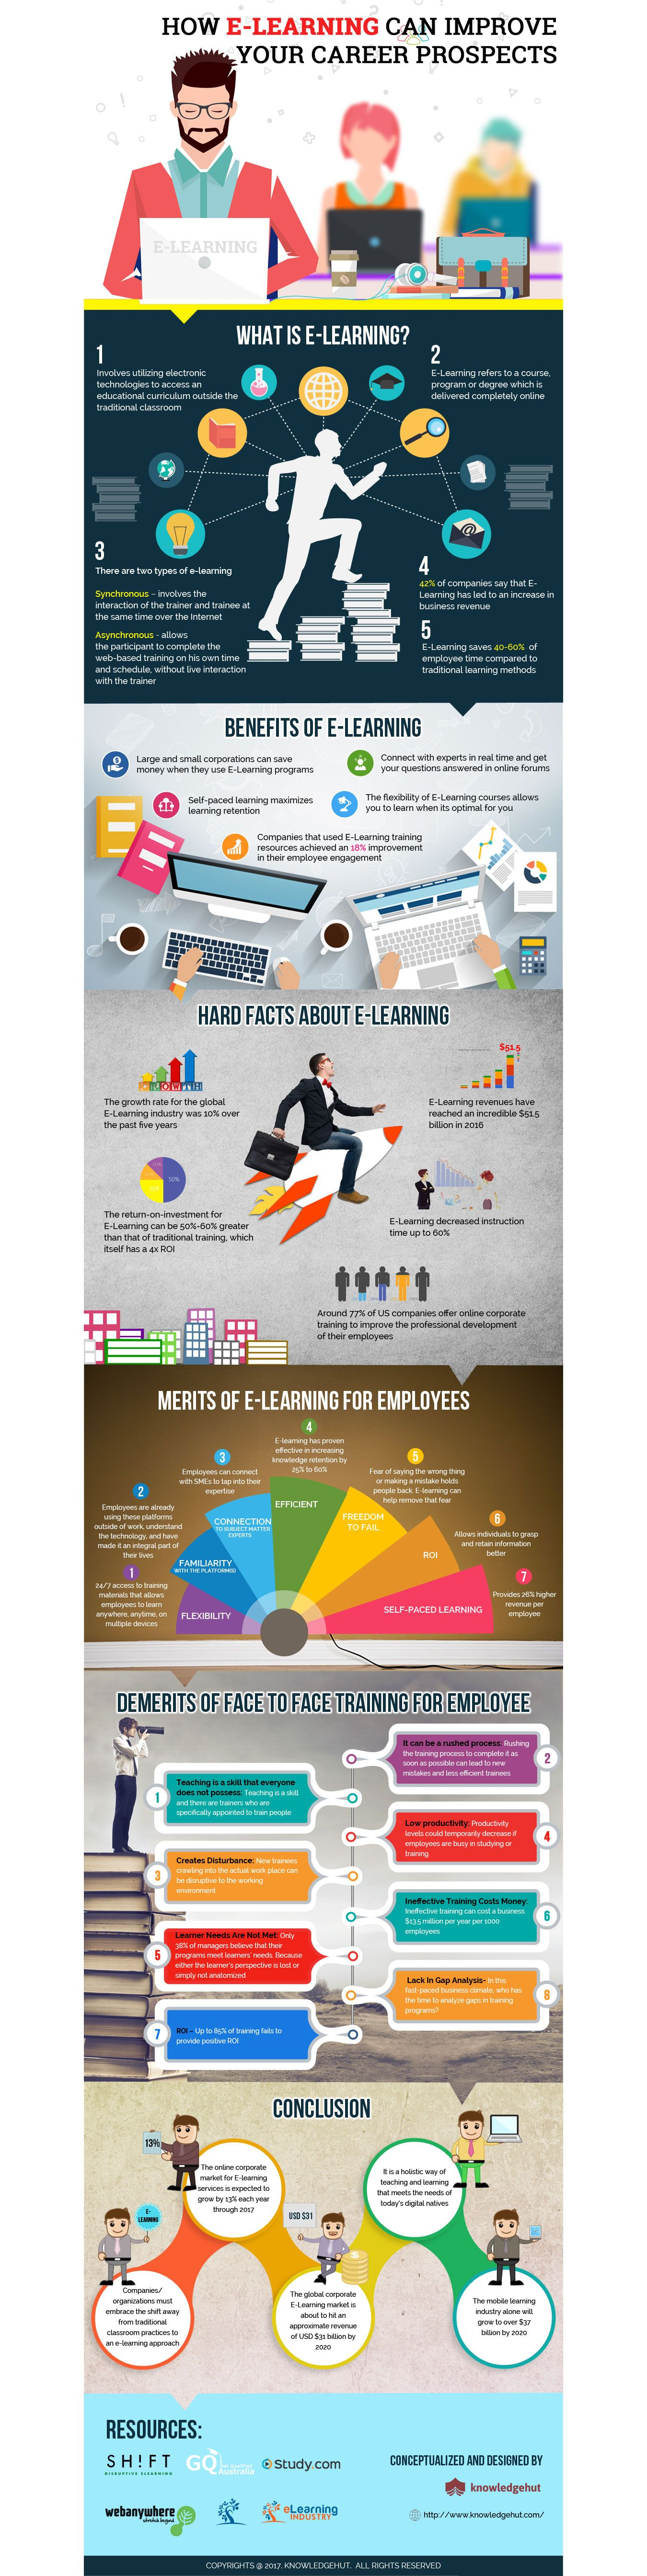 How E-Learning Can Help Improve Your Career Prospects